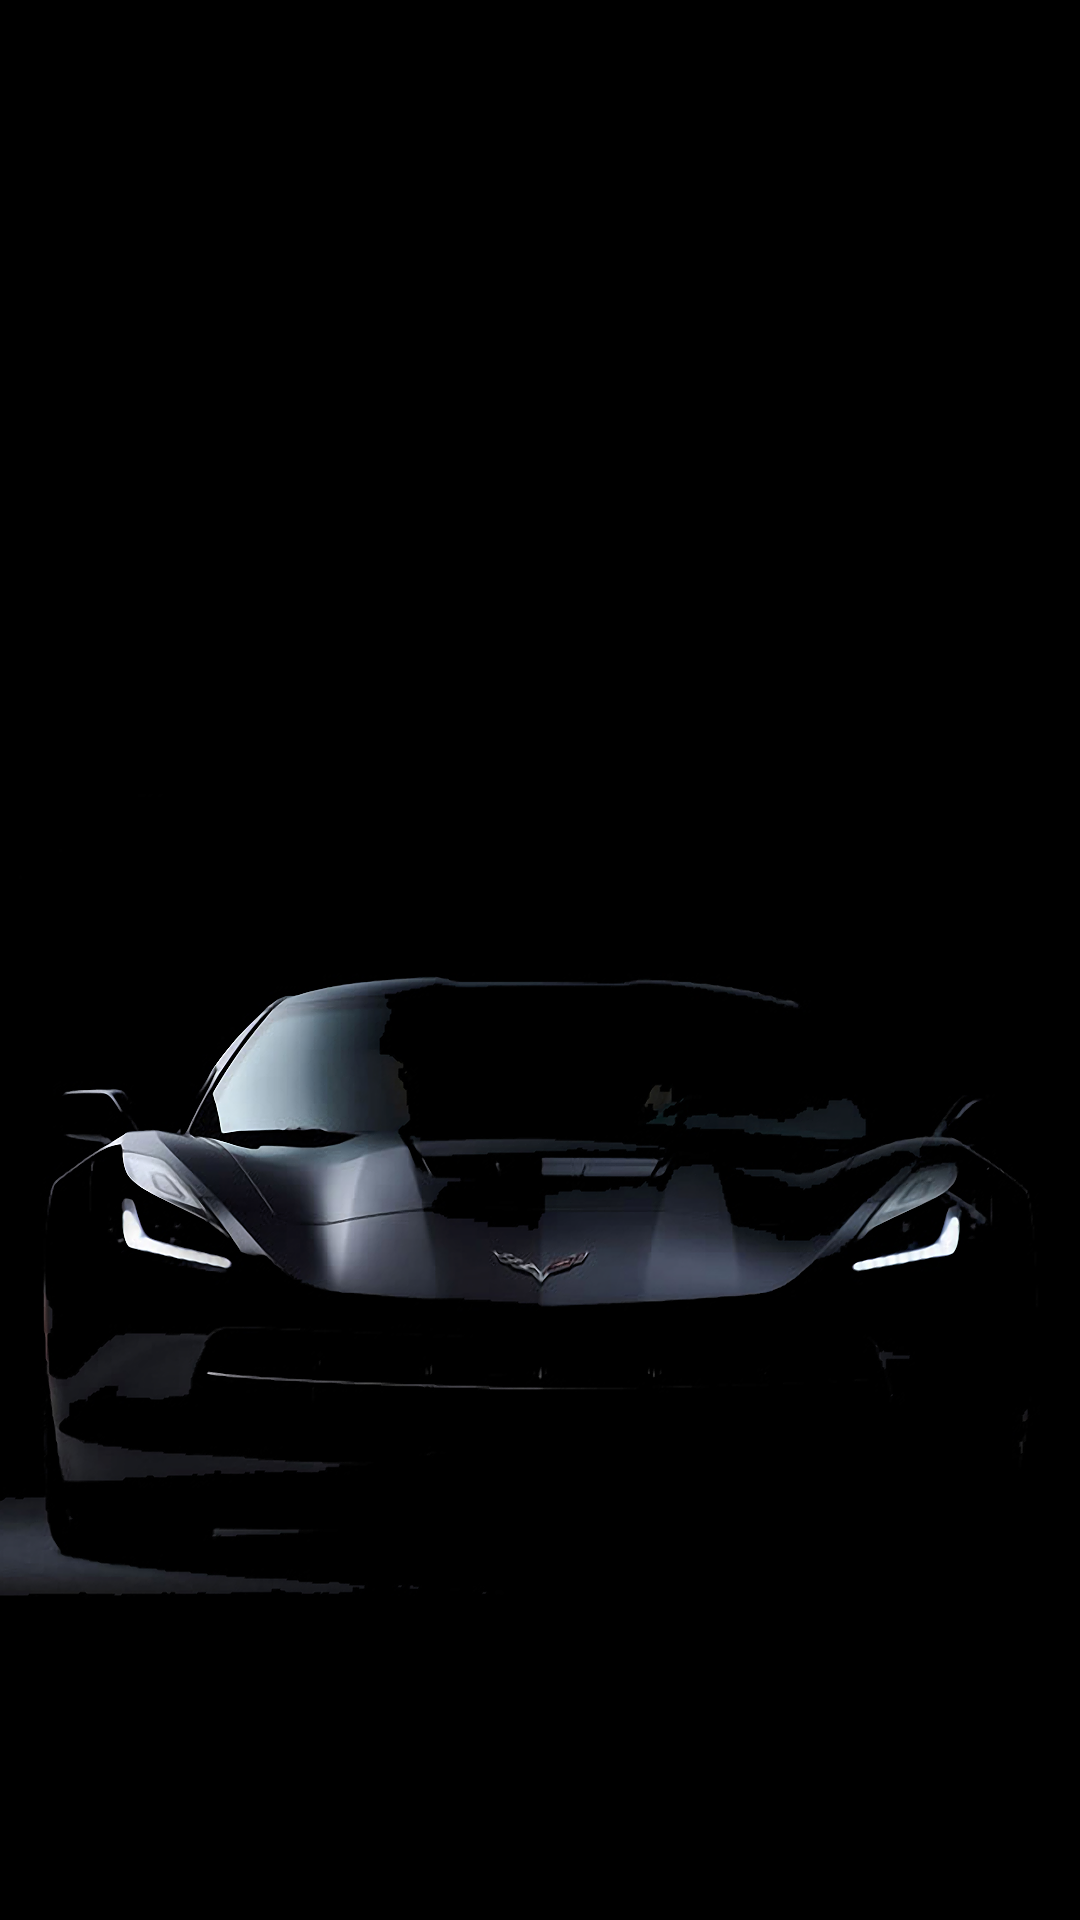 C7 Corvette Stingray Dark Iphone 7 Wallpaper Corvettes